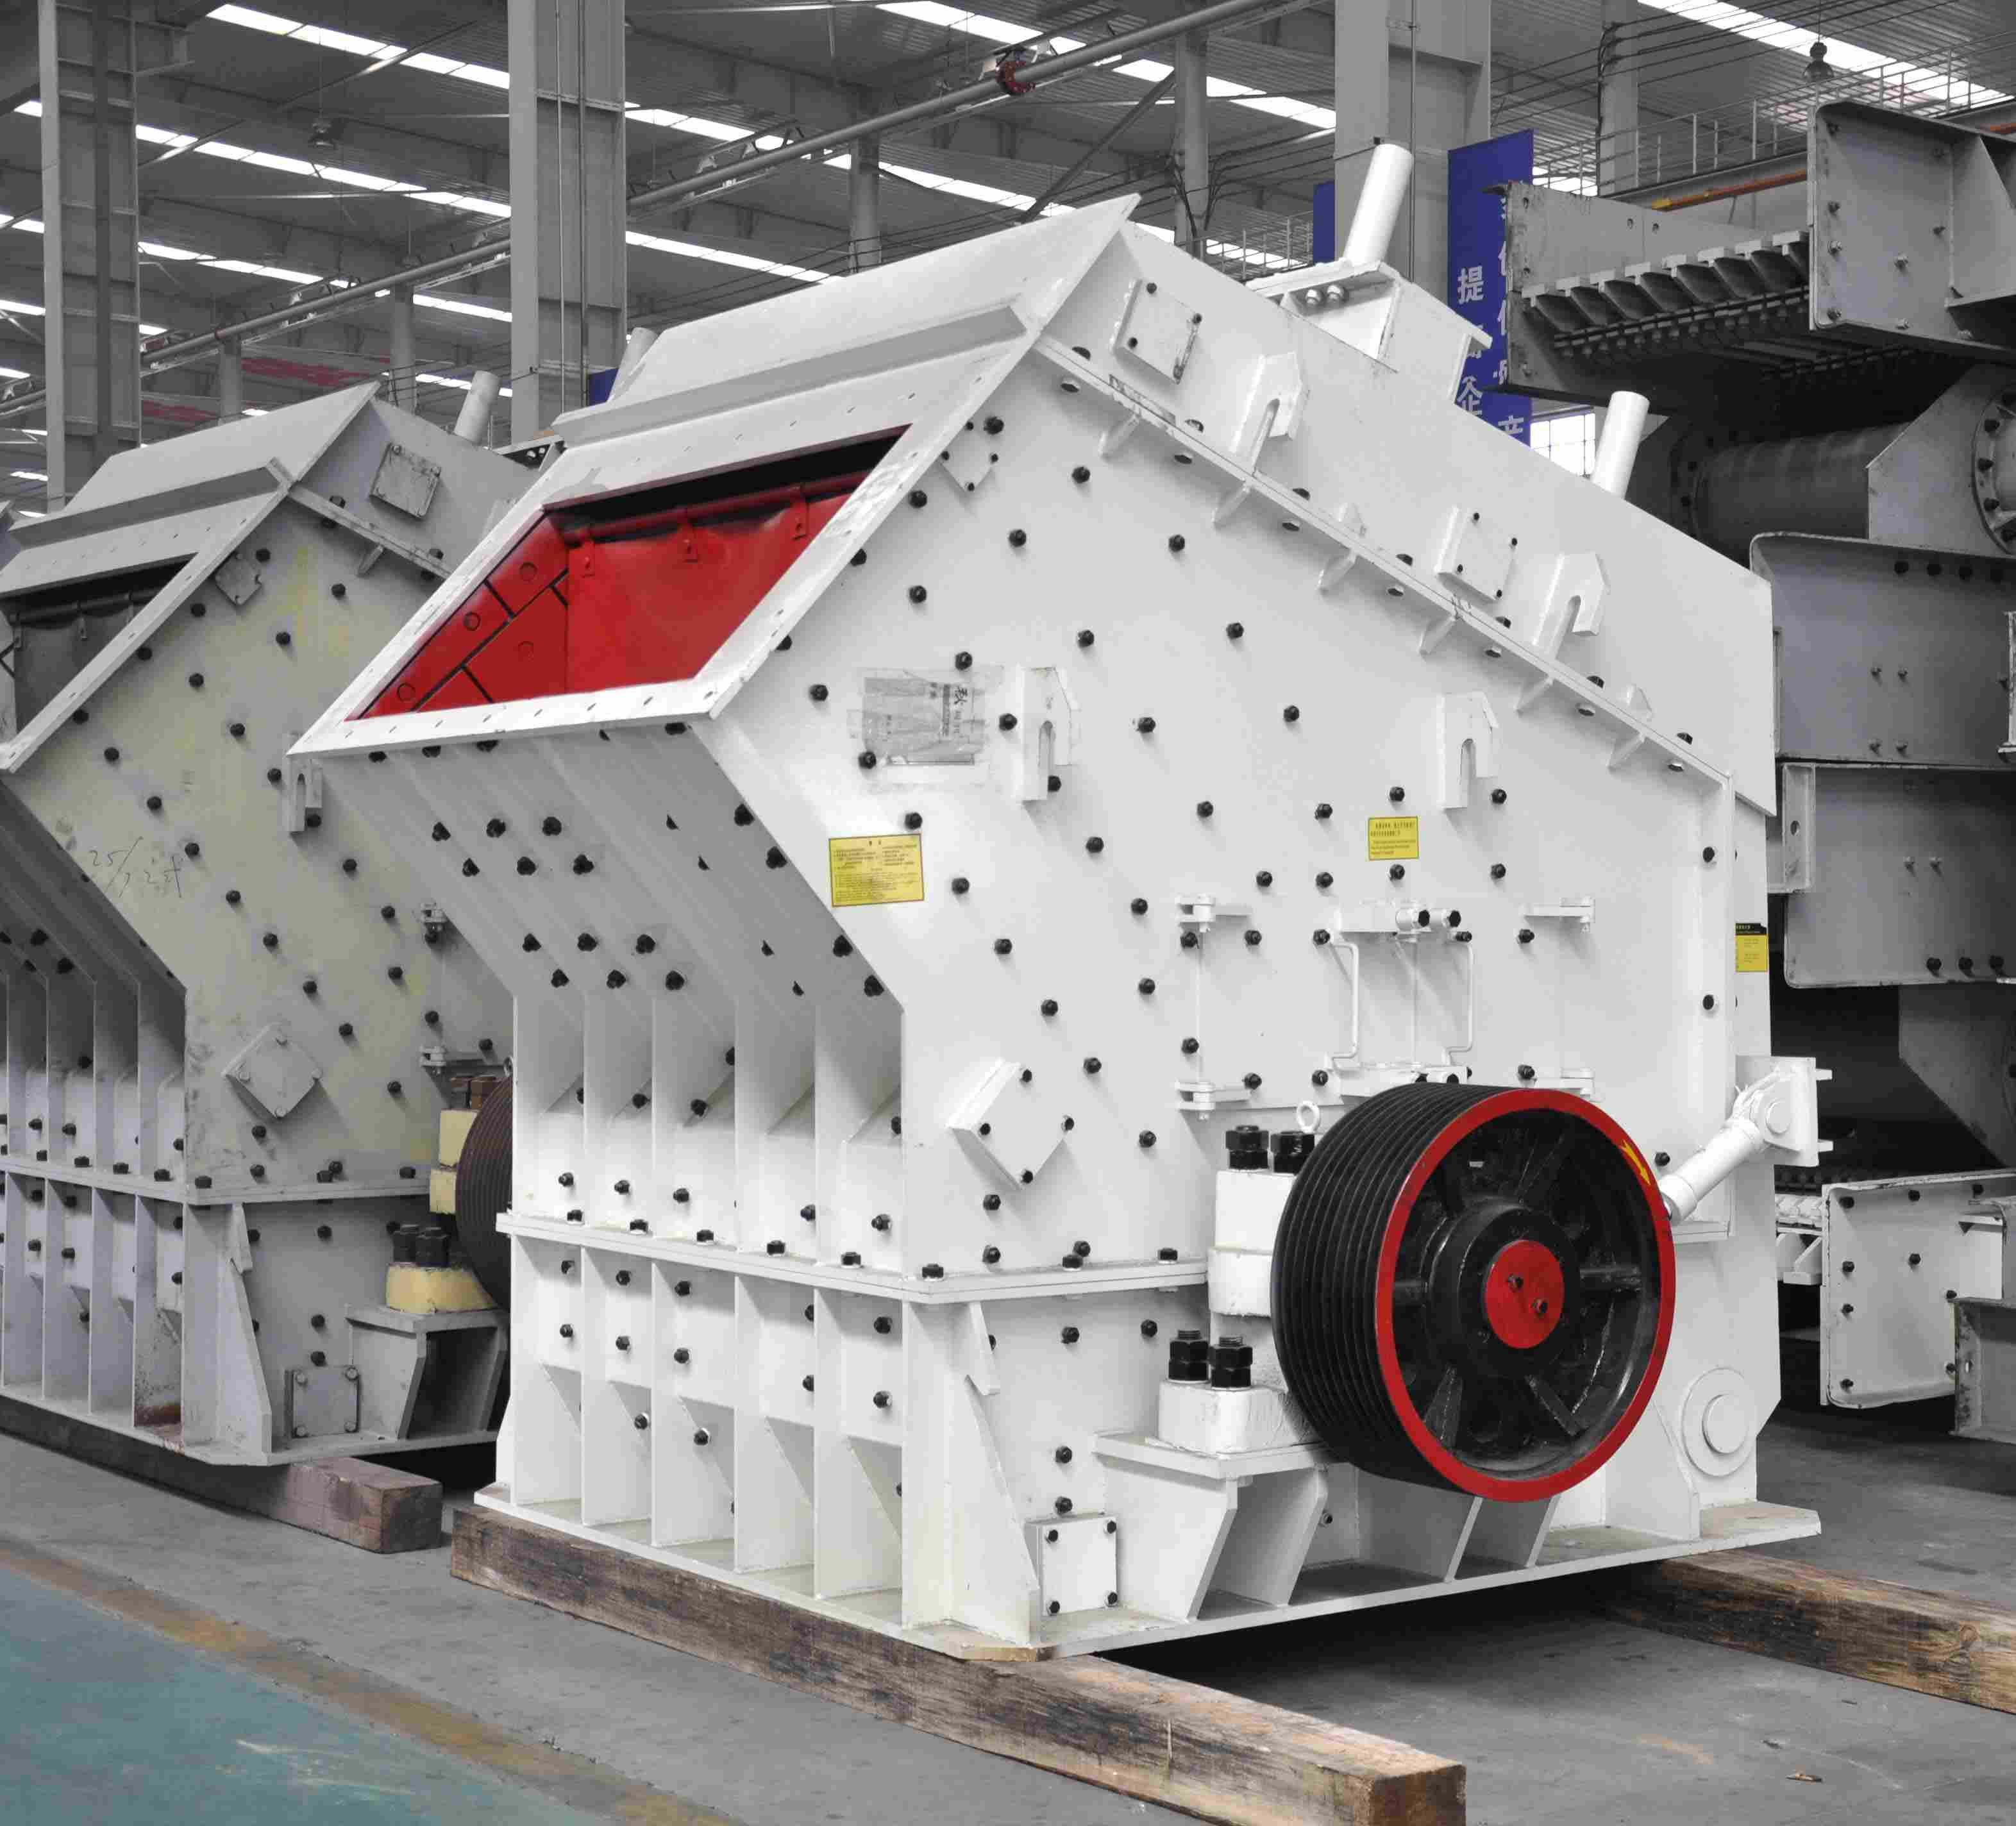 Building Material Shops Mobile Stone Crusher Price Granite Plant Low Vertical Type Hydraulic Breaker Limestone Impact in China